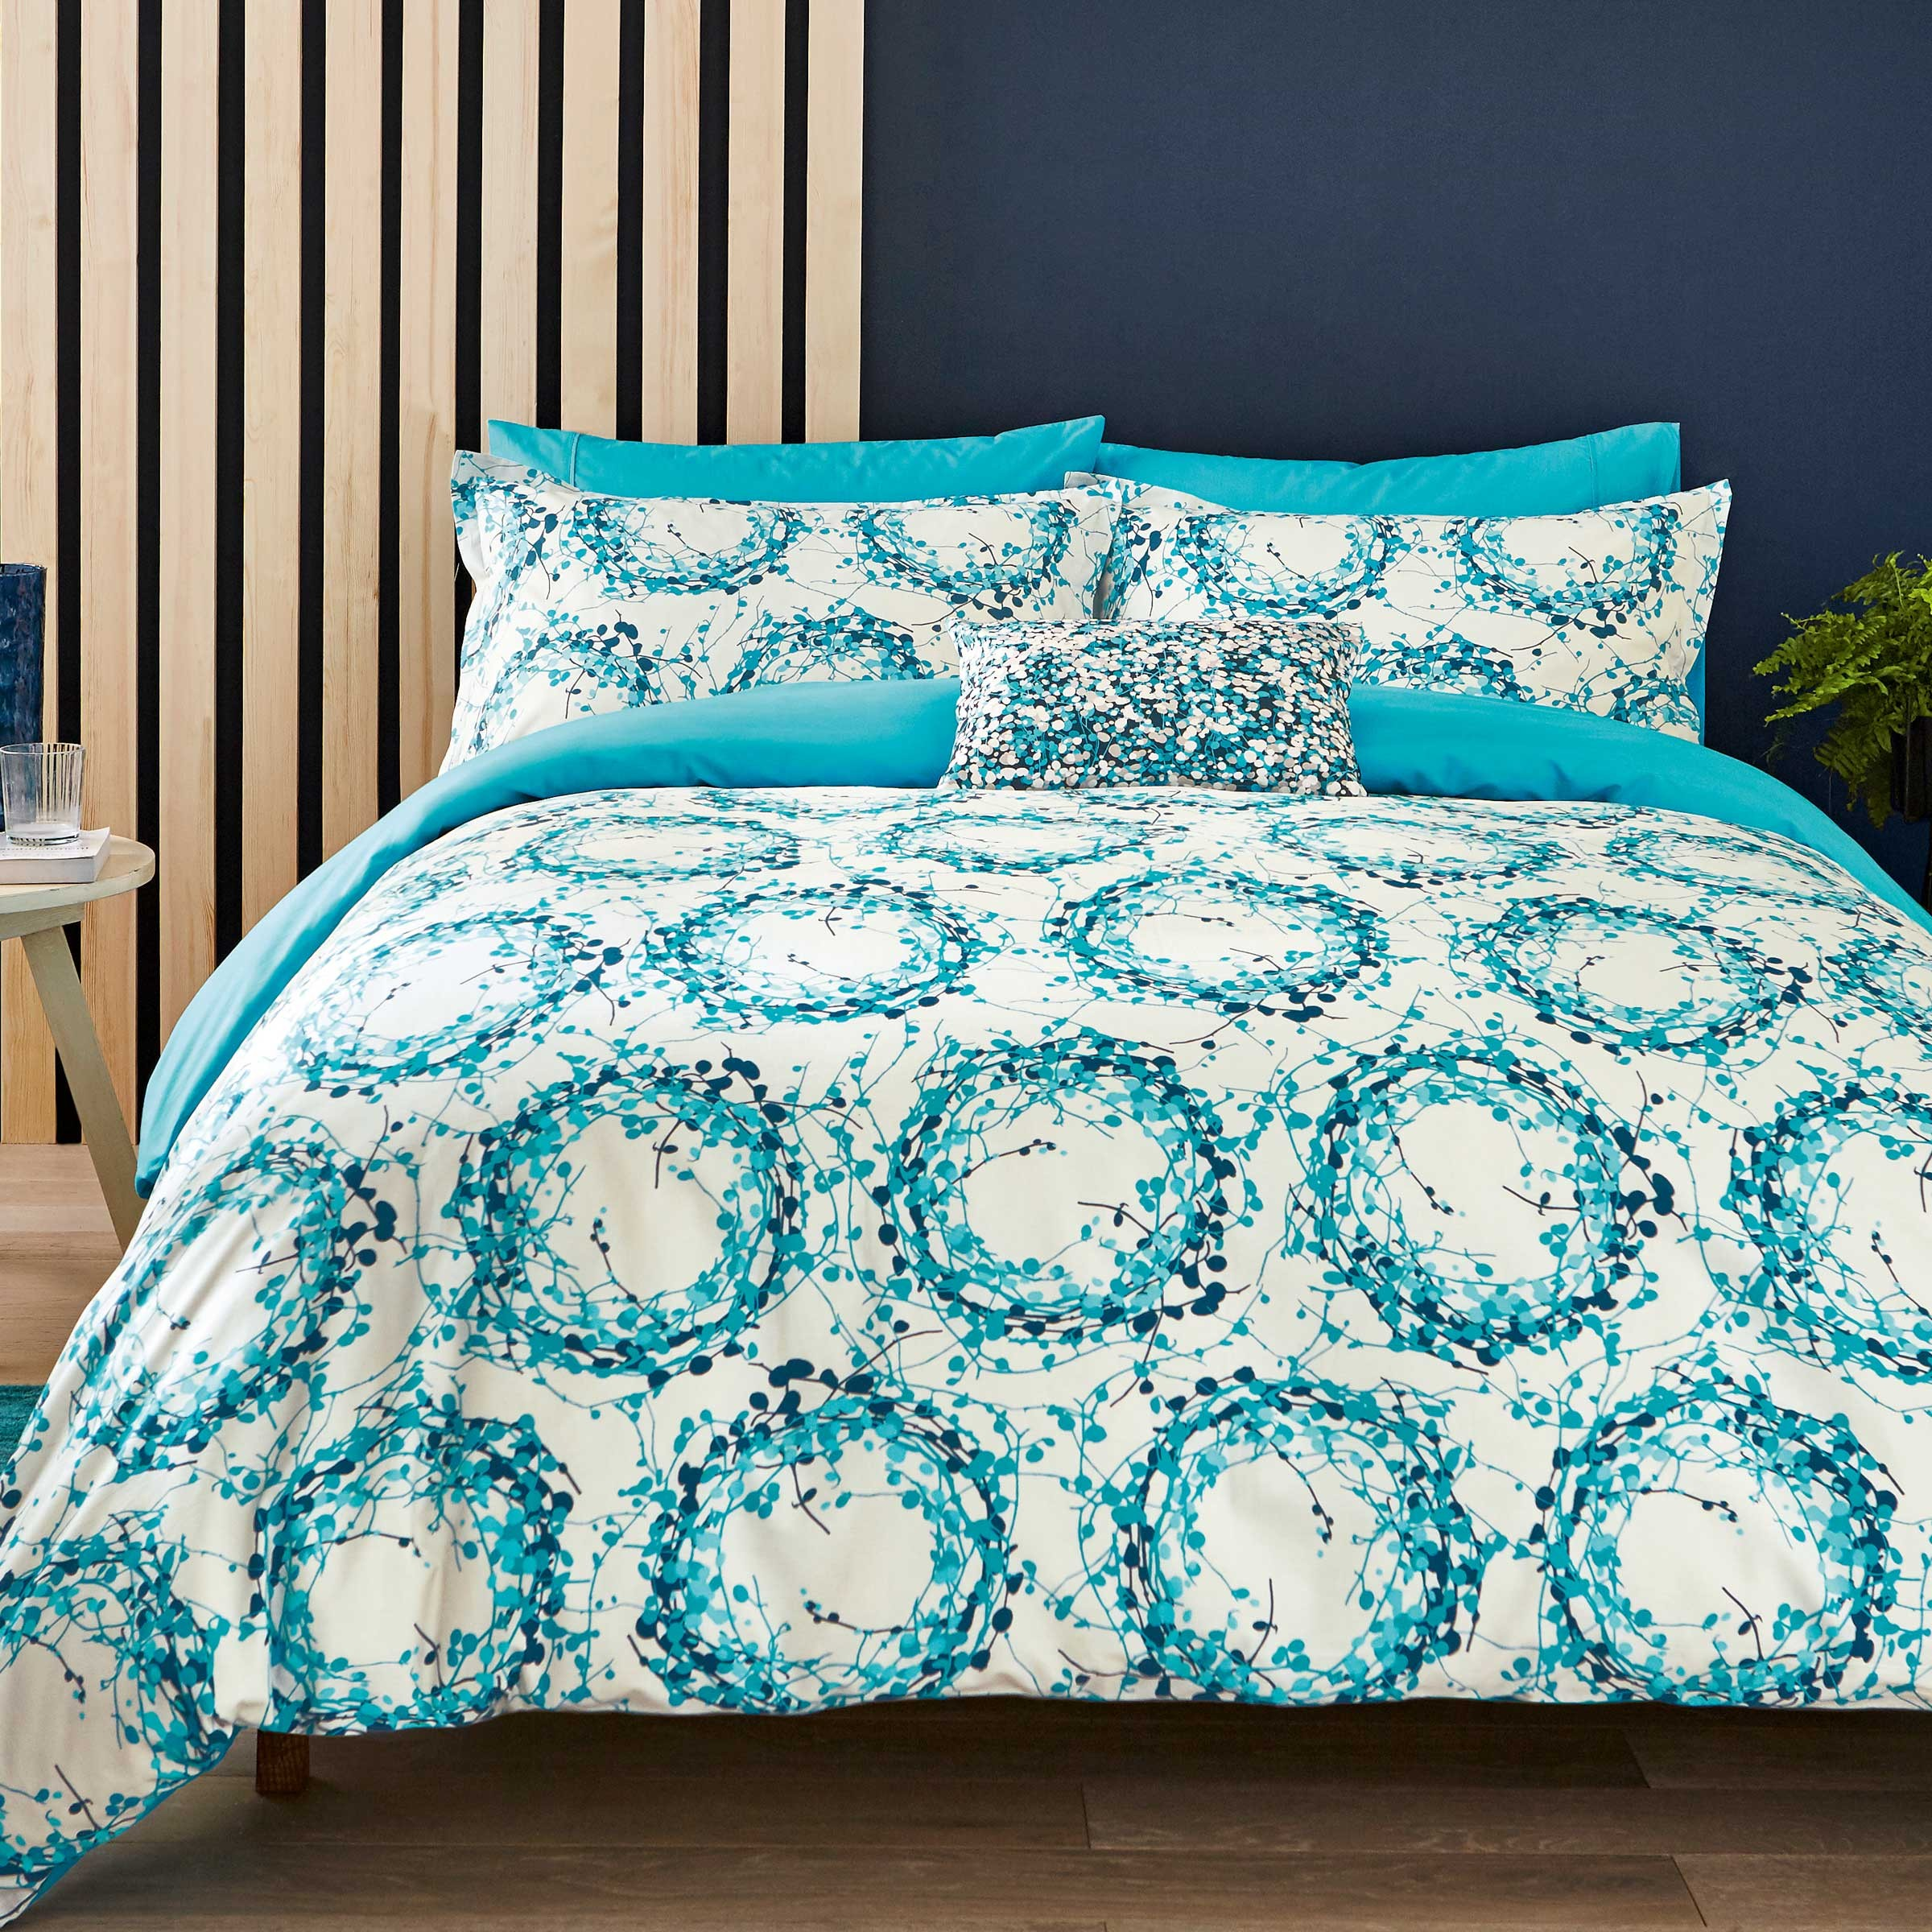 Turquoise bedding and plus teen girl comforter sets and plus turquoise and white sheets